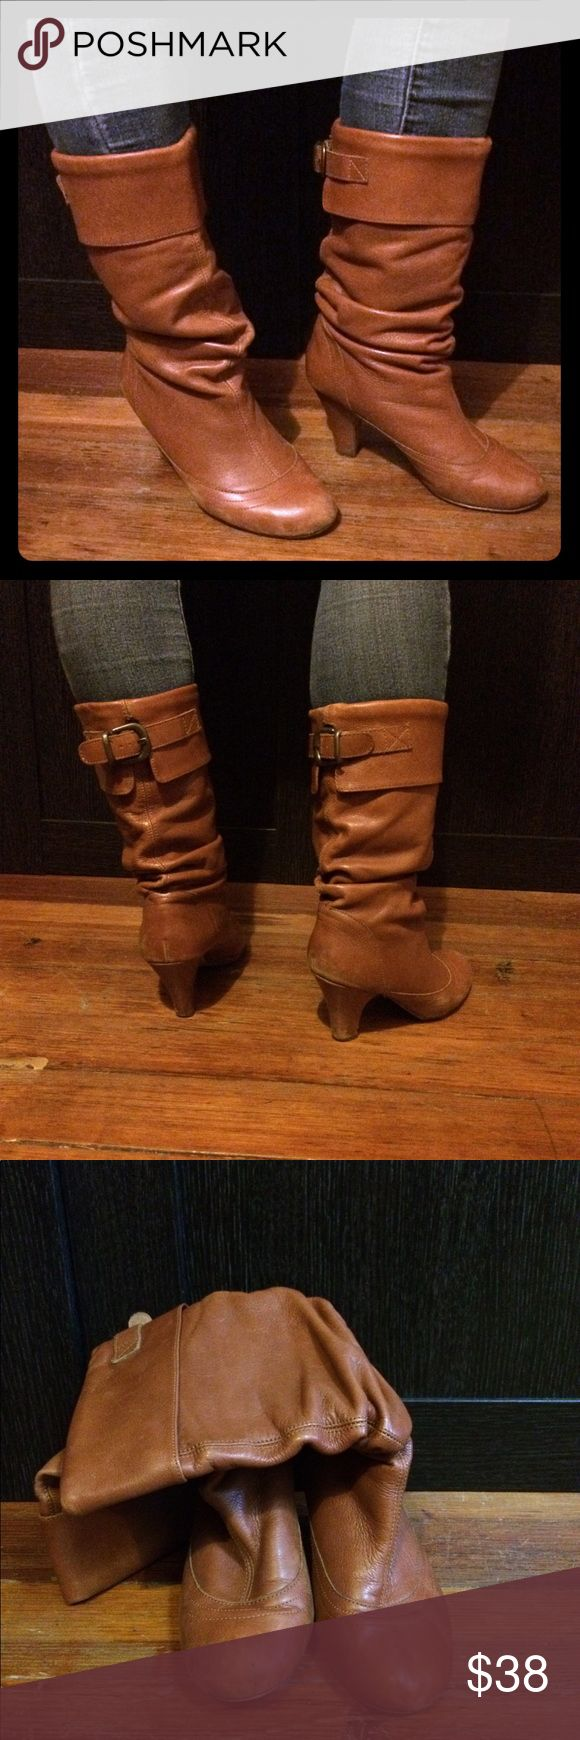 ⚛️New listing!⚛️ Used Leather boots Leather boots. Camel color. Slight heel. Used but still in good condition. Leather has a great worn quality and is very durable.   Purchased at Nordstrom, haven't worn in a several years. Scuff marks and bottom wear as pictured in photos.   Labeled as 7.  Owner is a size 8 and these fit perfectly with a light sock. Nordstrom Shoes Heeled Boots